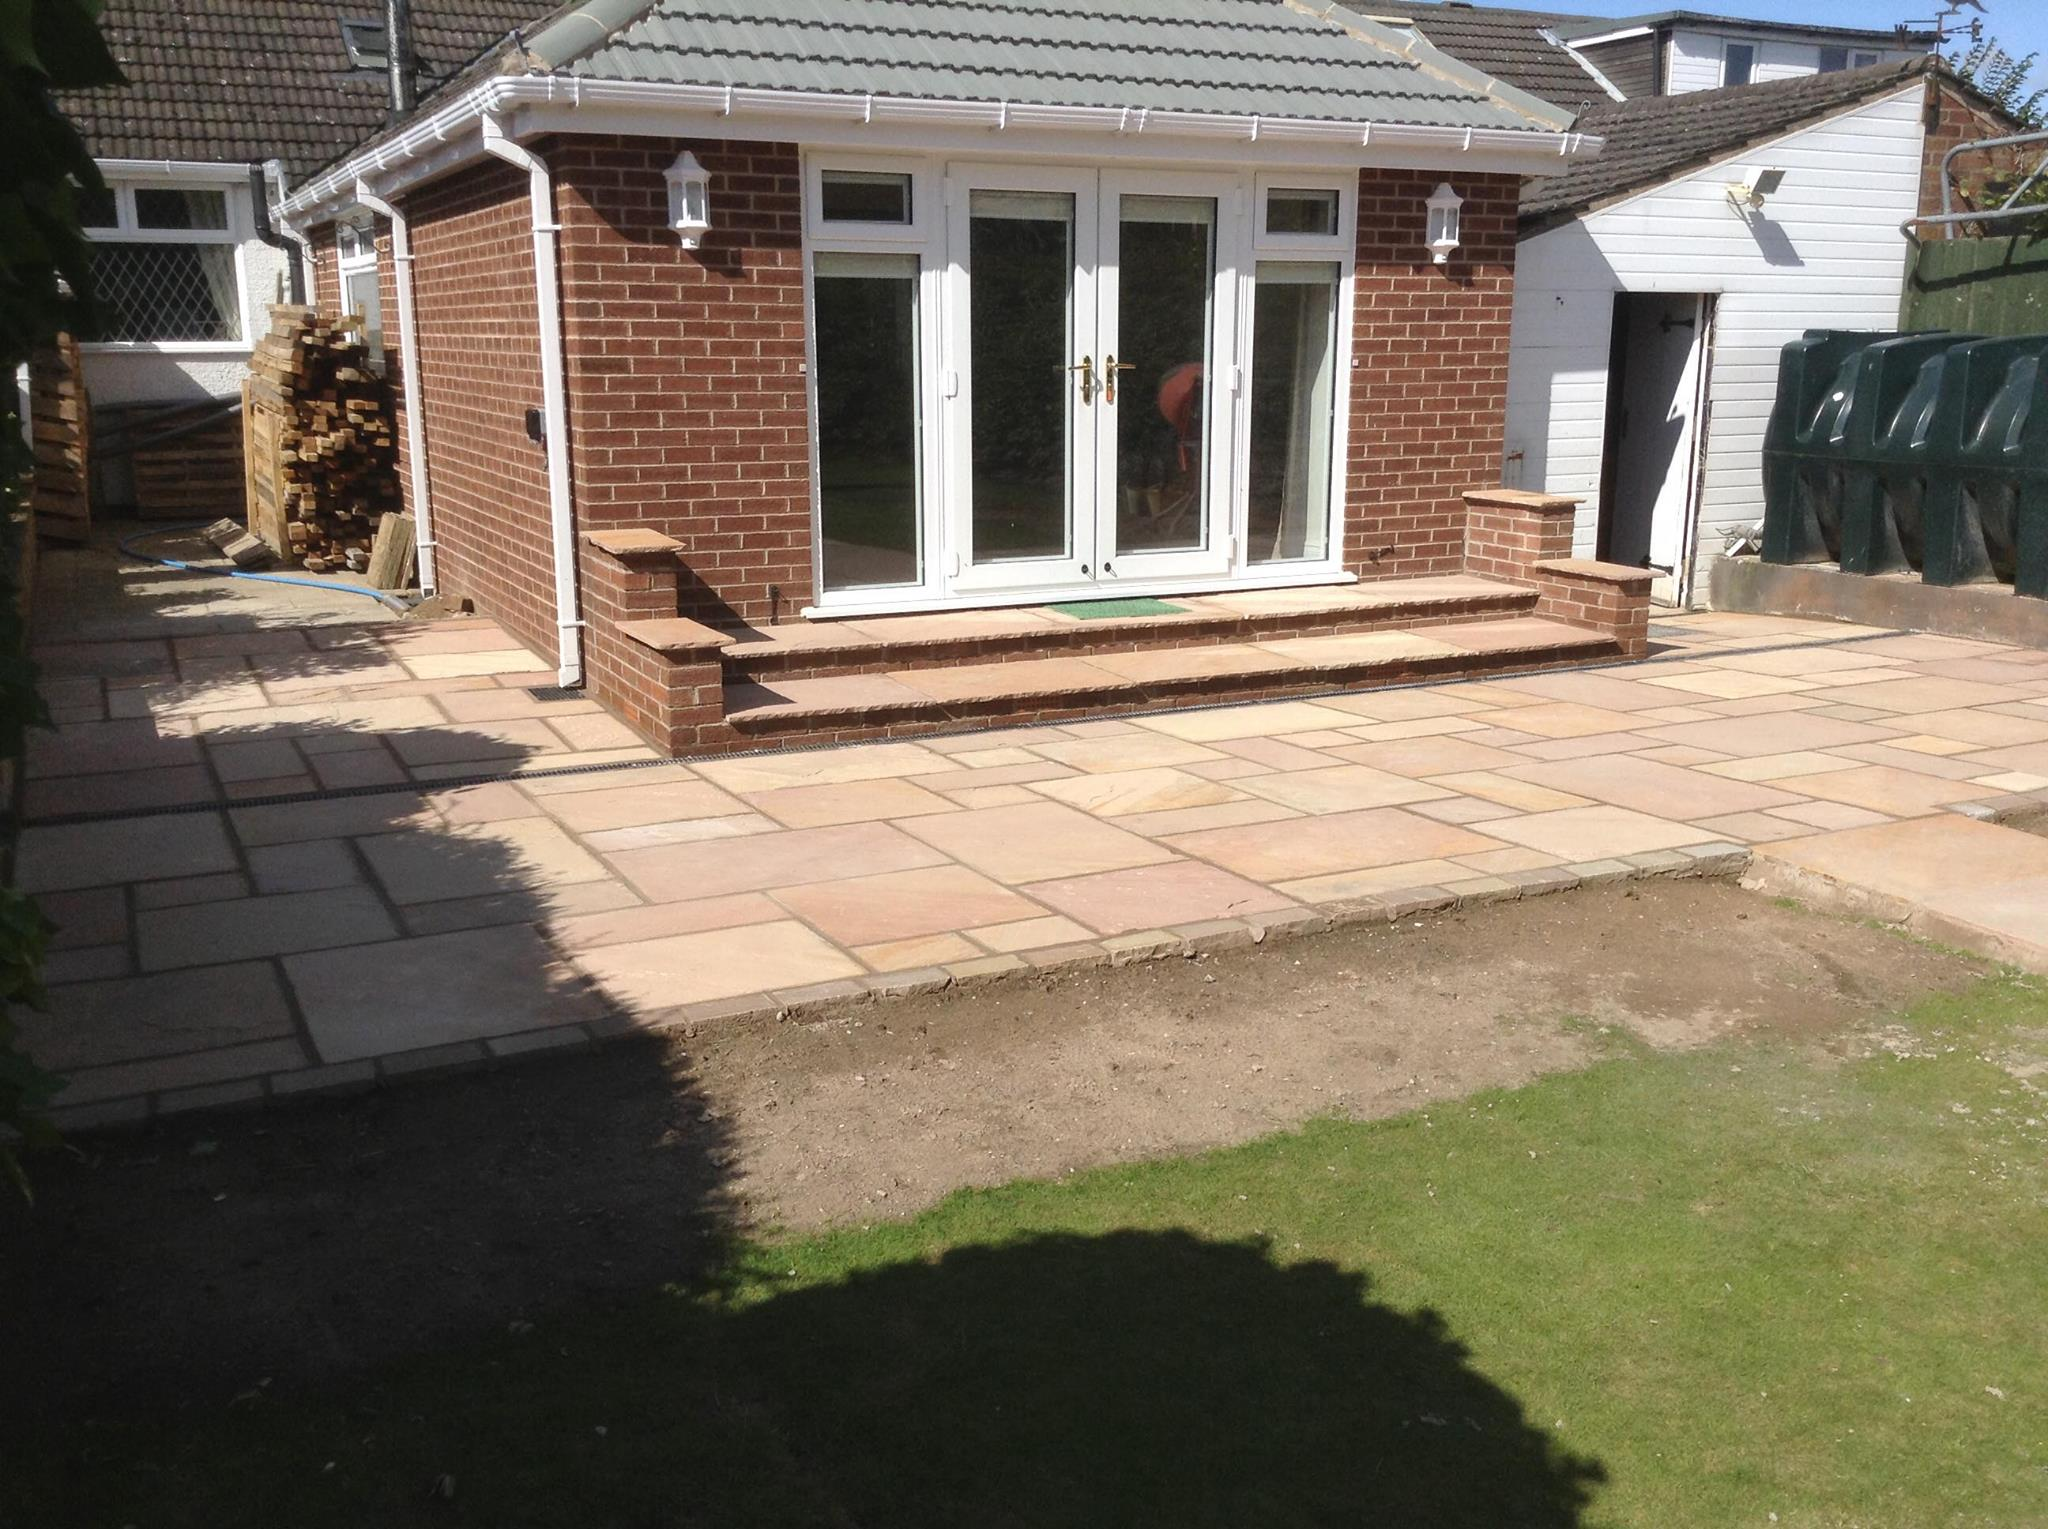 Patio gravel drain : Buff coloured indian stone patio with acore drains path